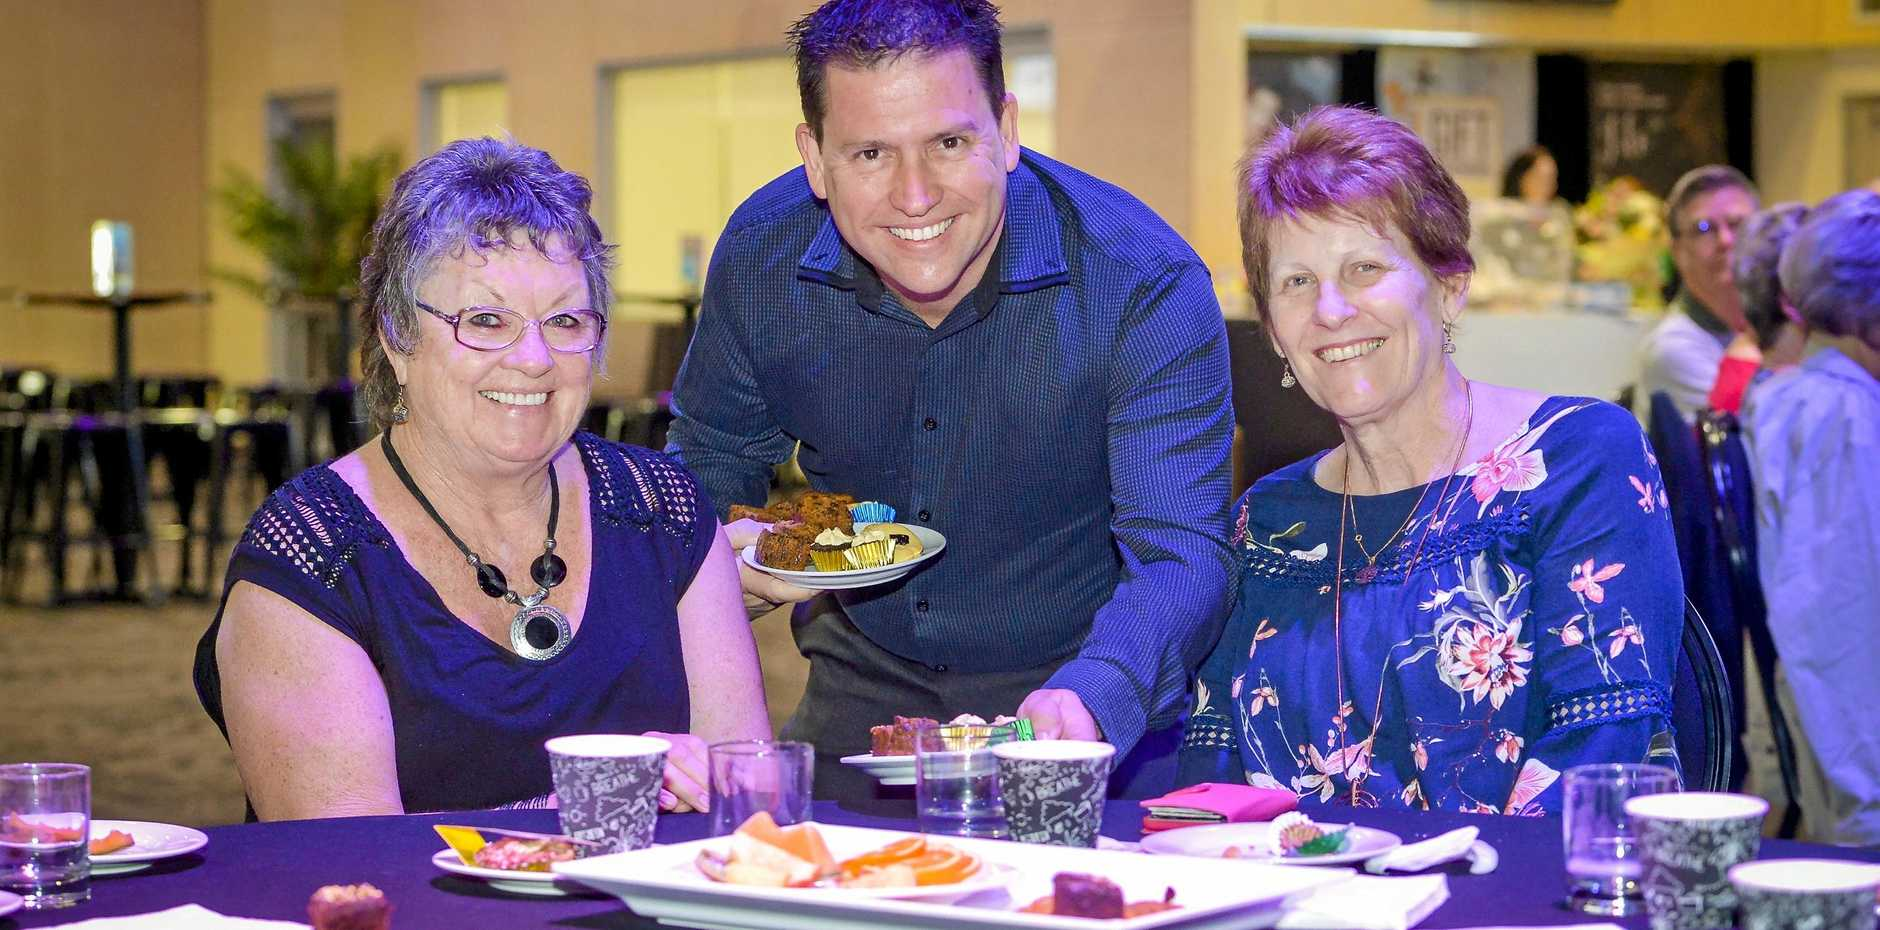 HERE'S TO YOU: Gladstone Region Mayor Matt Burnett serves morning tea to Gayle Young and Heather Kroesen at the Mayor's seniors week morning tea, held at Gladstone Entertainment Convention Centre on 25 August, 2018.